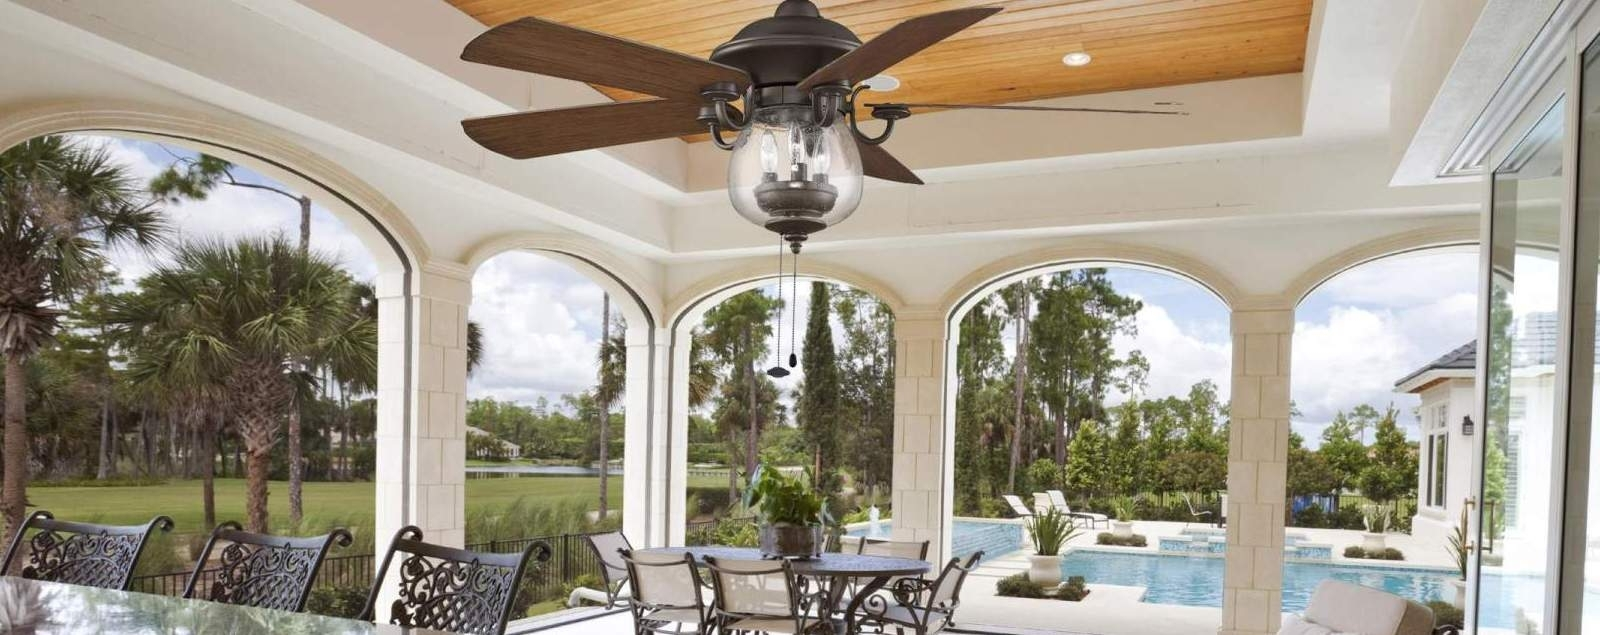 Outdoor Ceiling Fans – Shop Wet, Dry, And Damp Rated Outdoor Fans Throughout Current Quality Outdoor Ceiling Fans (View 6 of 20)